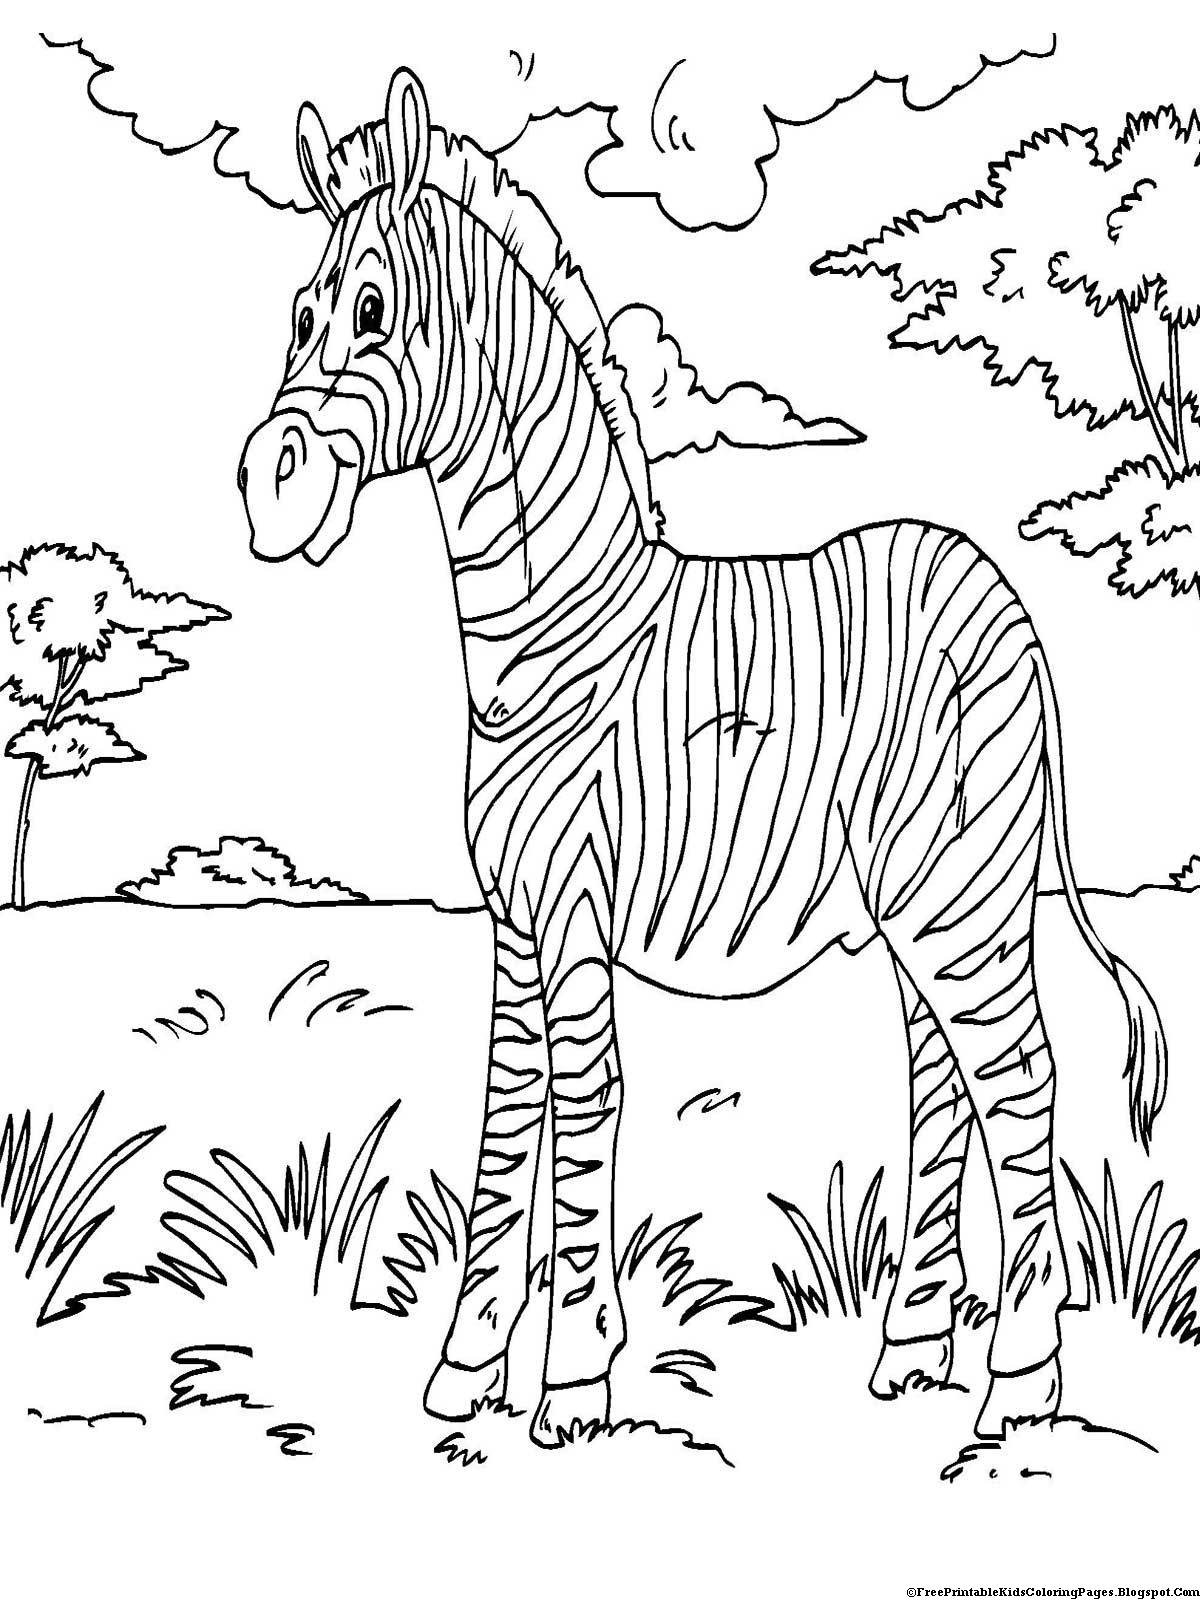 coloring worksheets for toddlers doll coloring pages best coloring pages for kids toddlers worksheets for coloring